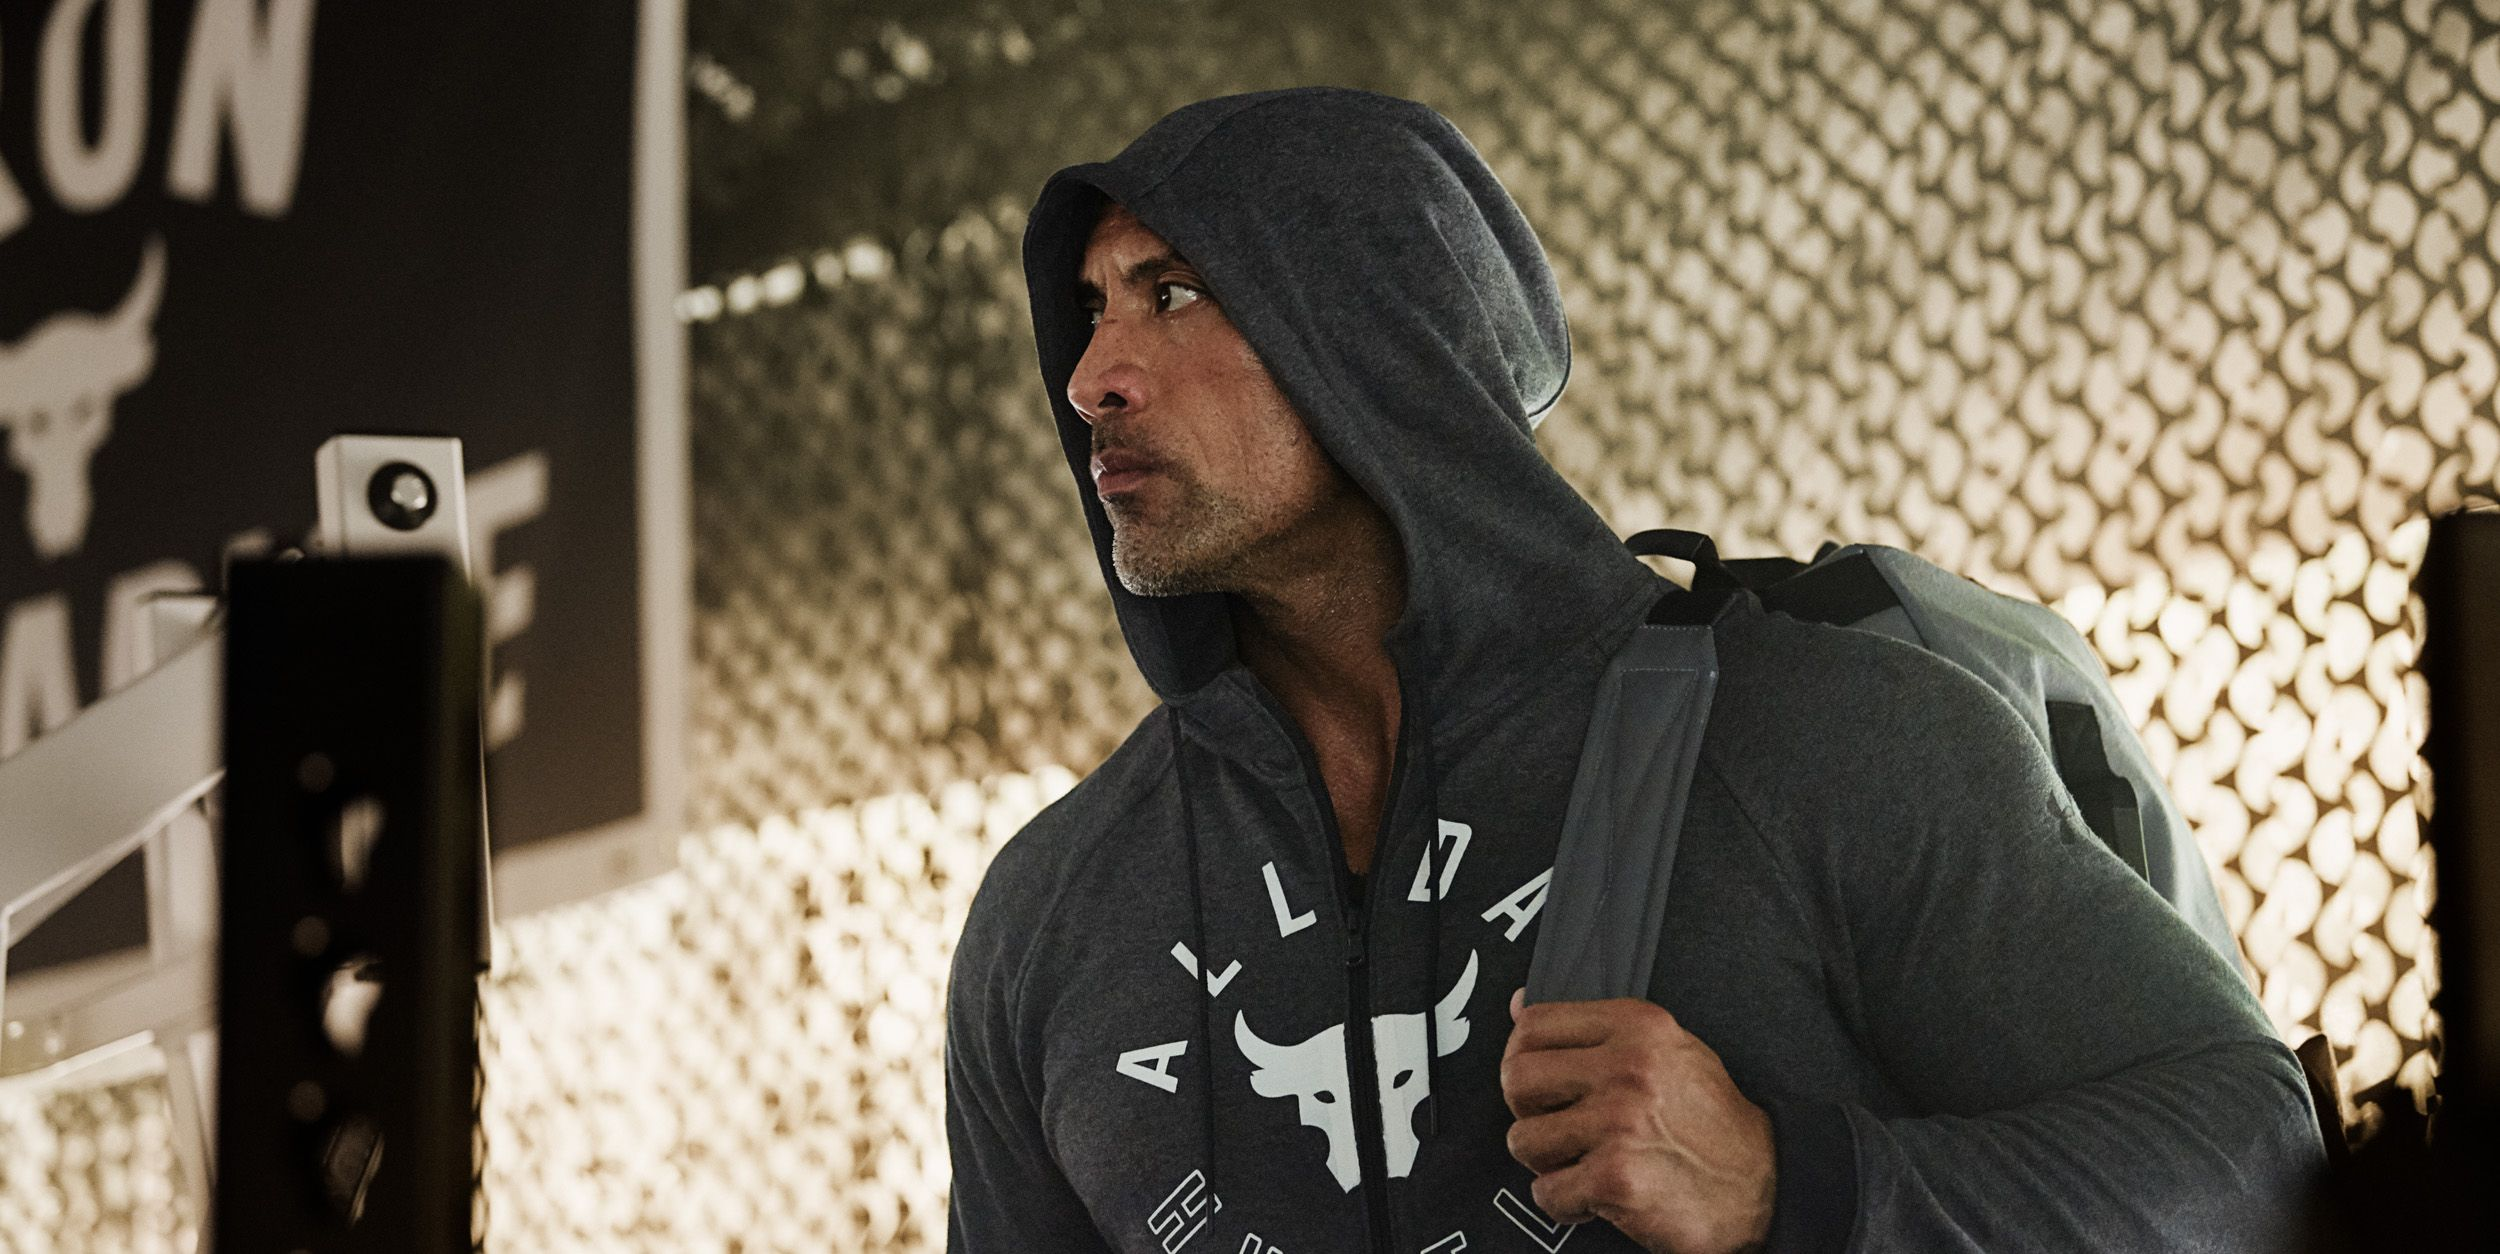 The Rock, King of the Gym, Dropped New Sneakers